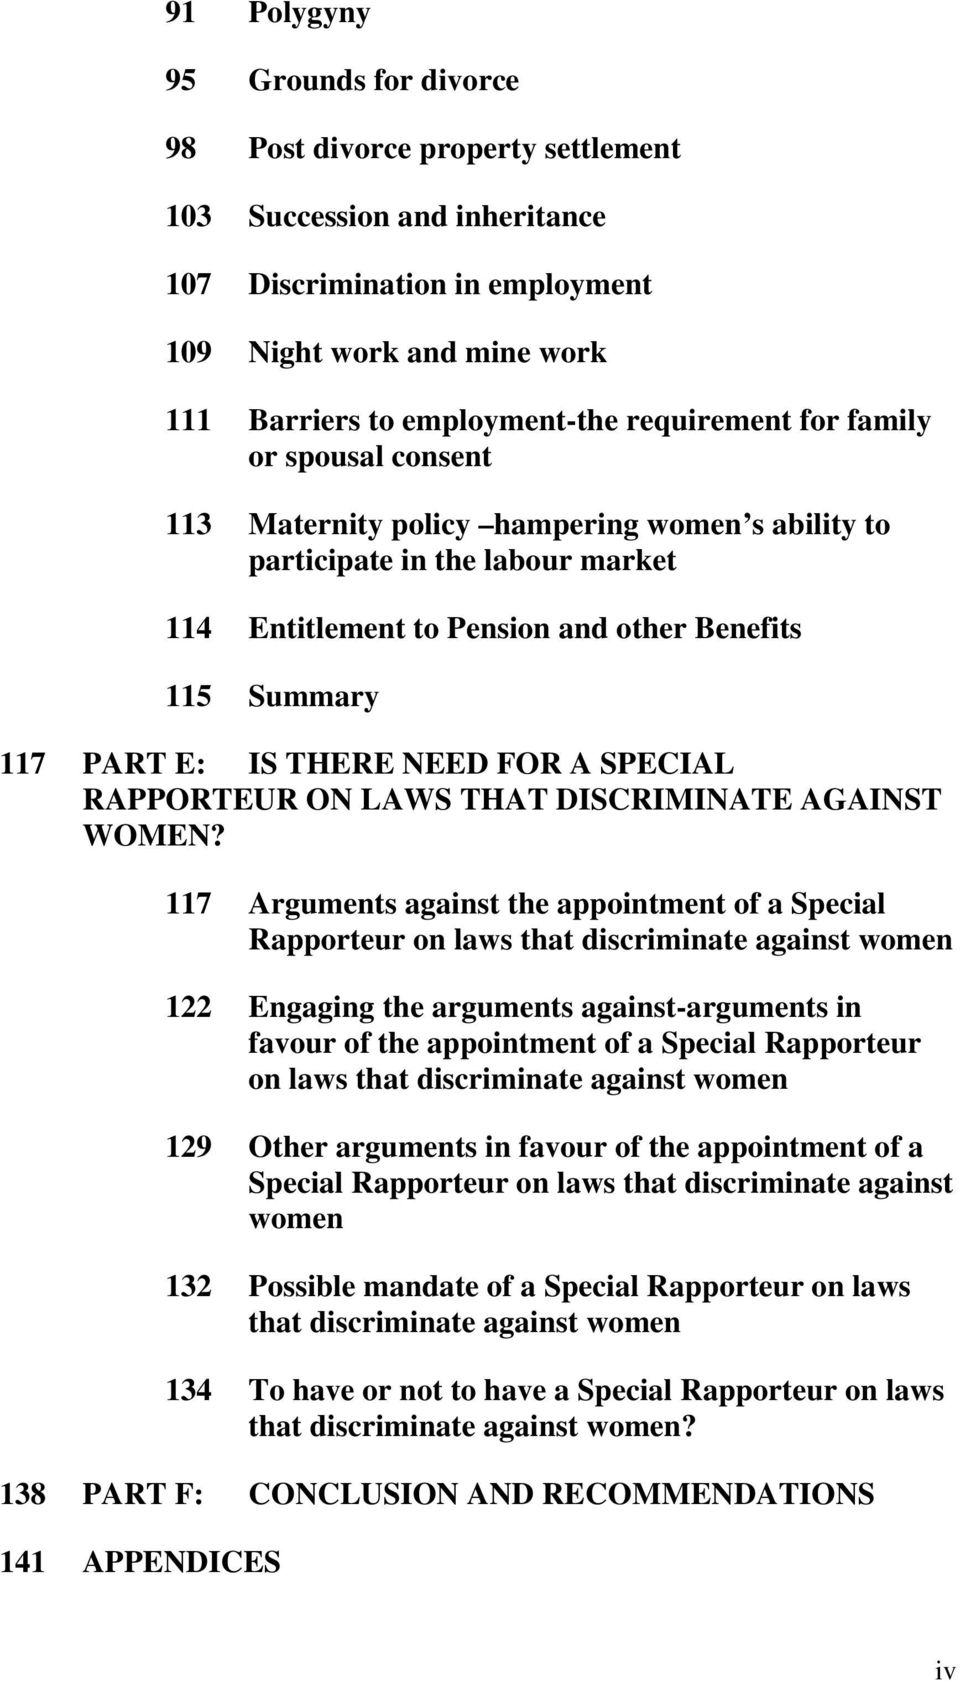 THERE NEED FOR A SPECIAL RAPPORTEUR ON LAWS THAT DISCRIMINATE AGAINST WOMEN?